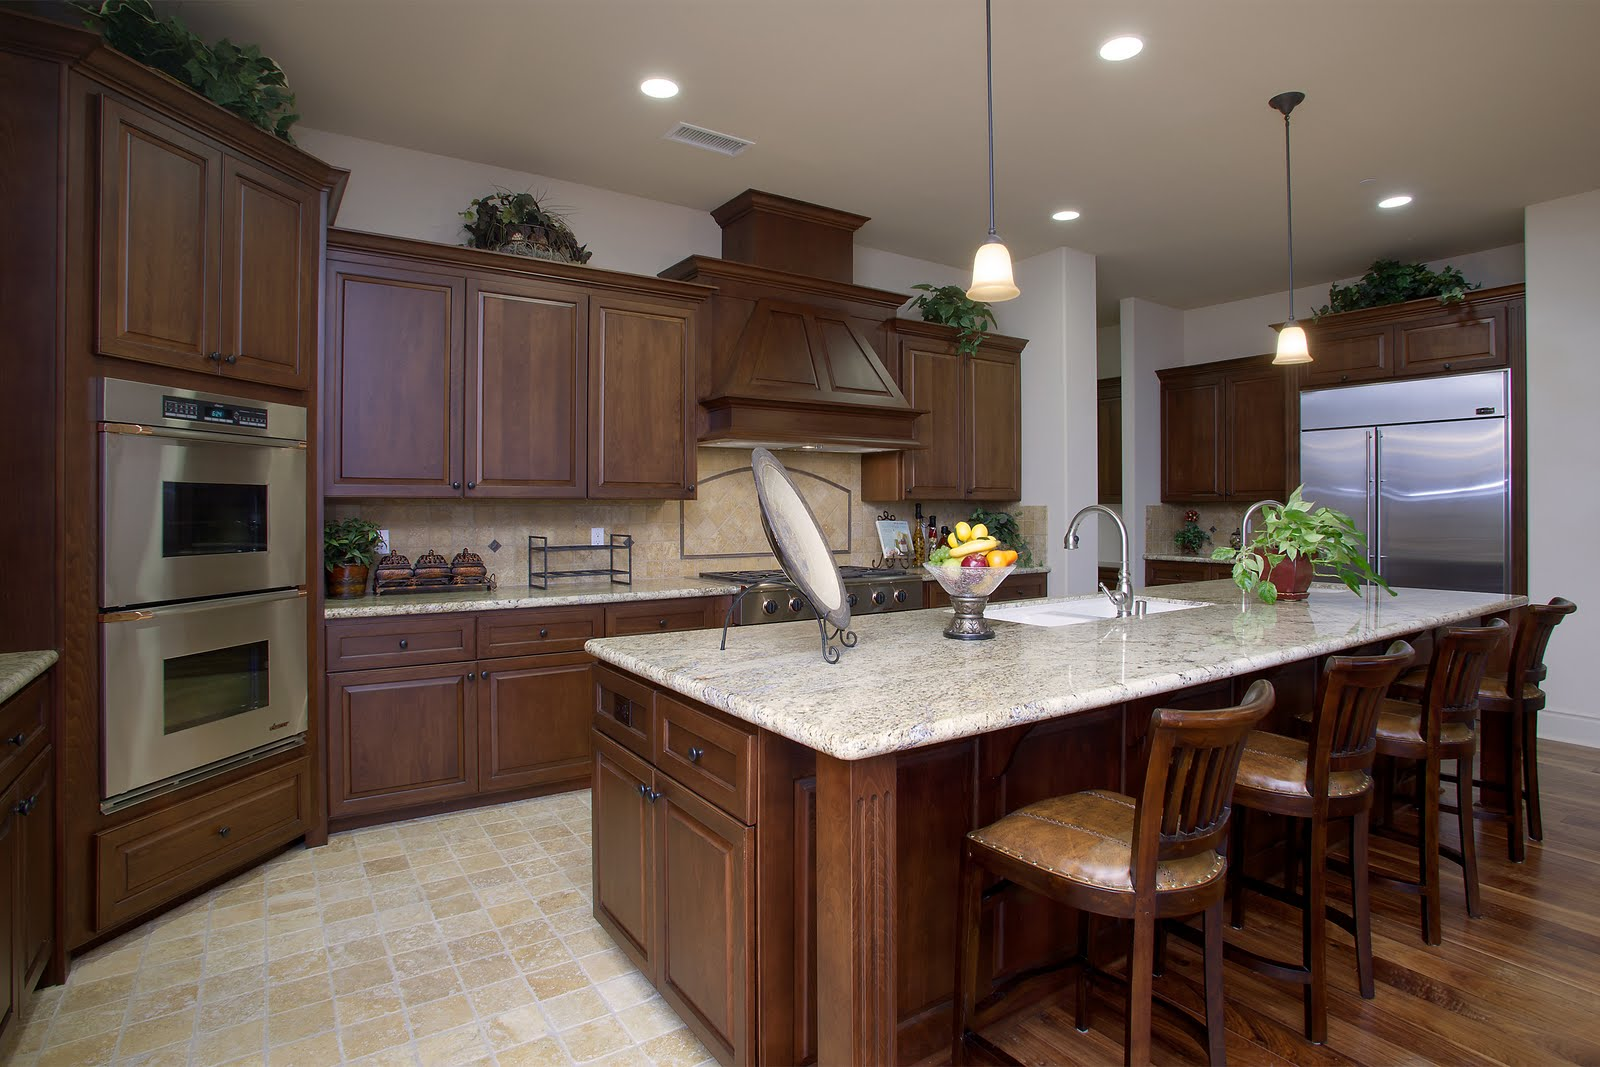 Model Home Kitchen Amusing Kitchen Model Homes  Wallpaper Side Blog Design Ideas